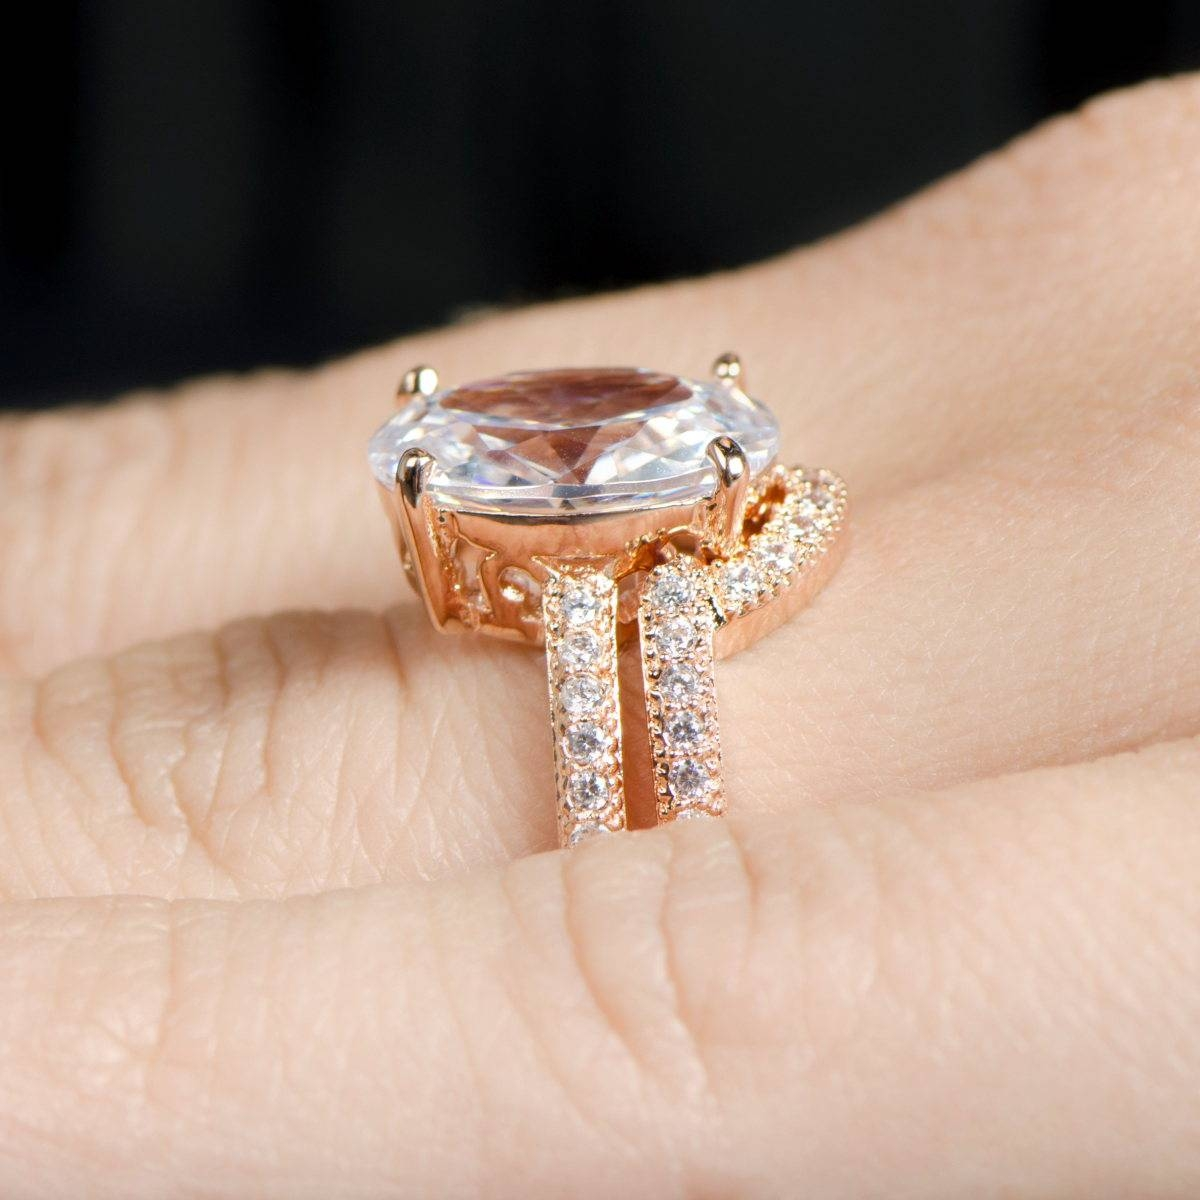 Oval Cut 5 Carat Rose Goldtone Cz Wedding Ring Set With Regard To Oval Wedding Rings Sets (Gallery 3 of 15)